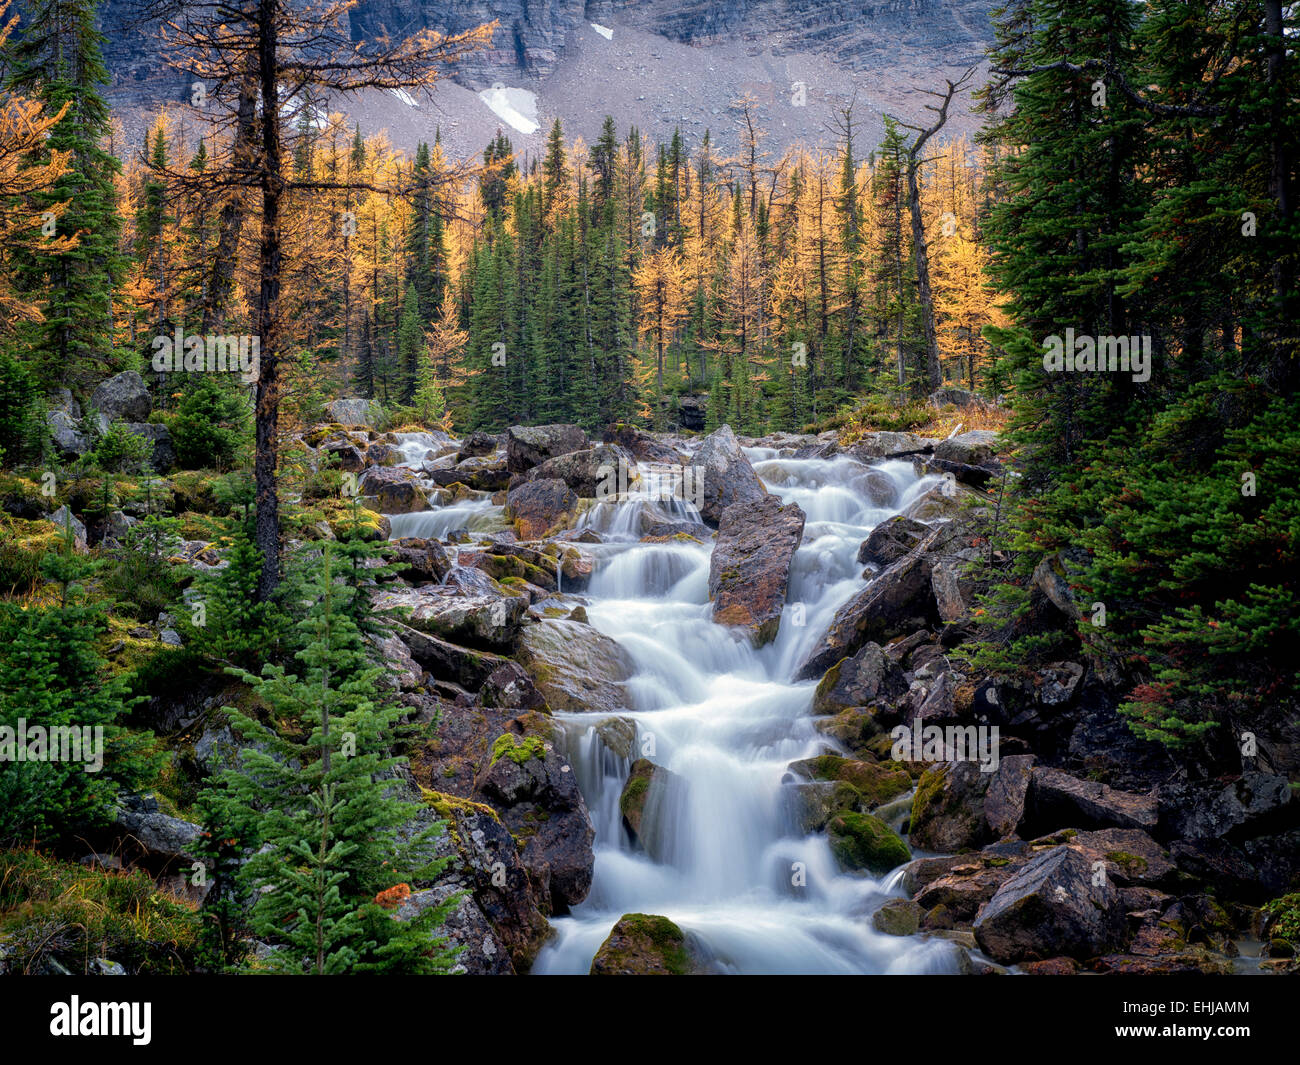 Stream flows from the Opabin Plateau past fall colored larch trees. Yoho National Park, Opabin Plateau, British - Stock Image